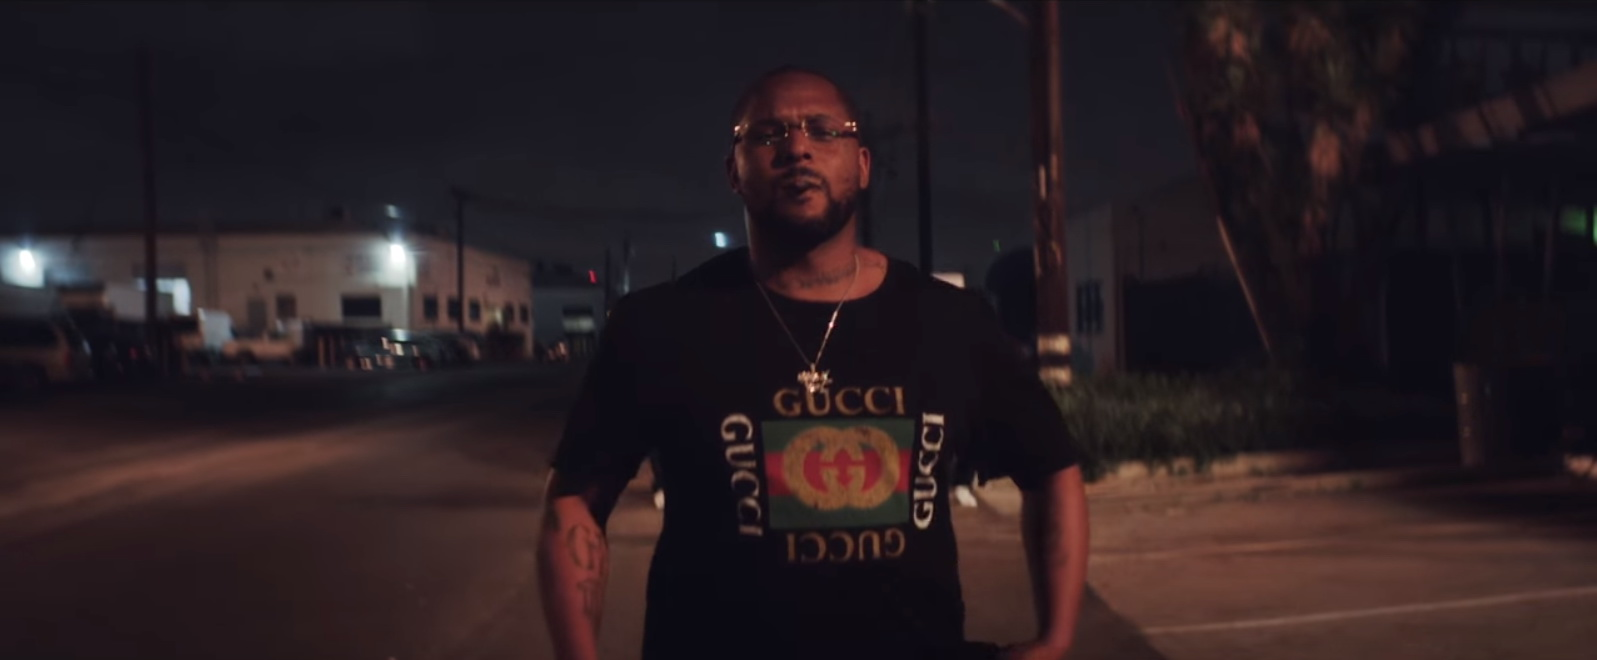 Gucci T-Shirt - Kendrick Lamar - DNA. Music Video  Product Placement Review